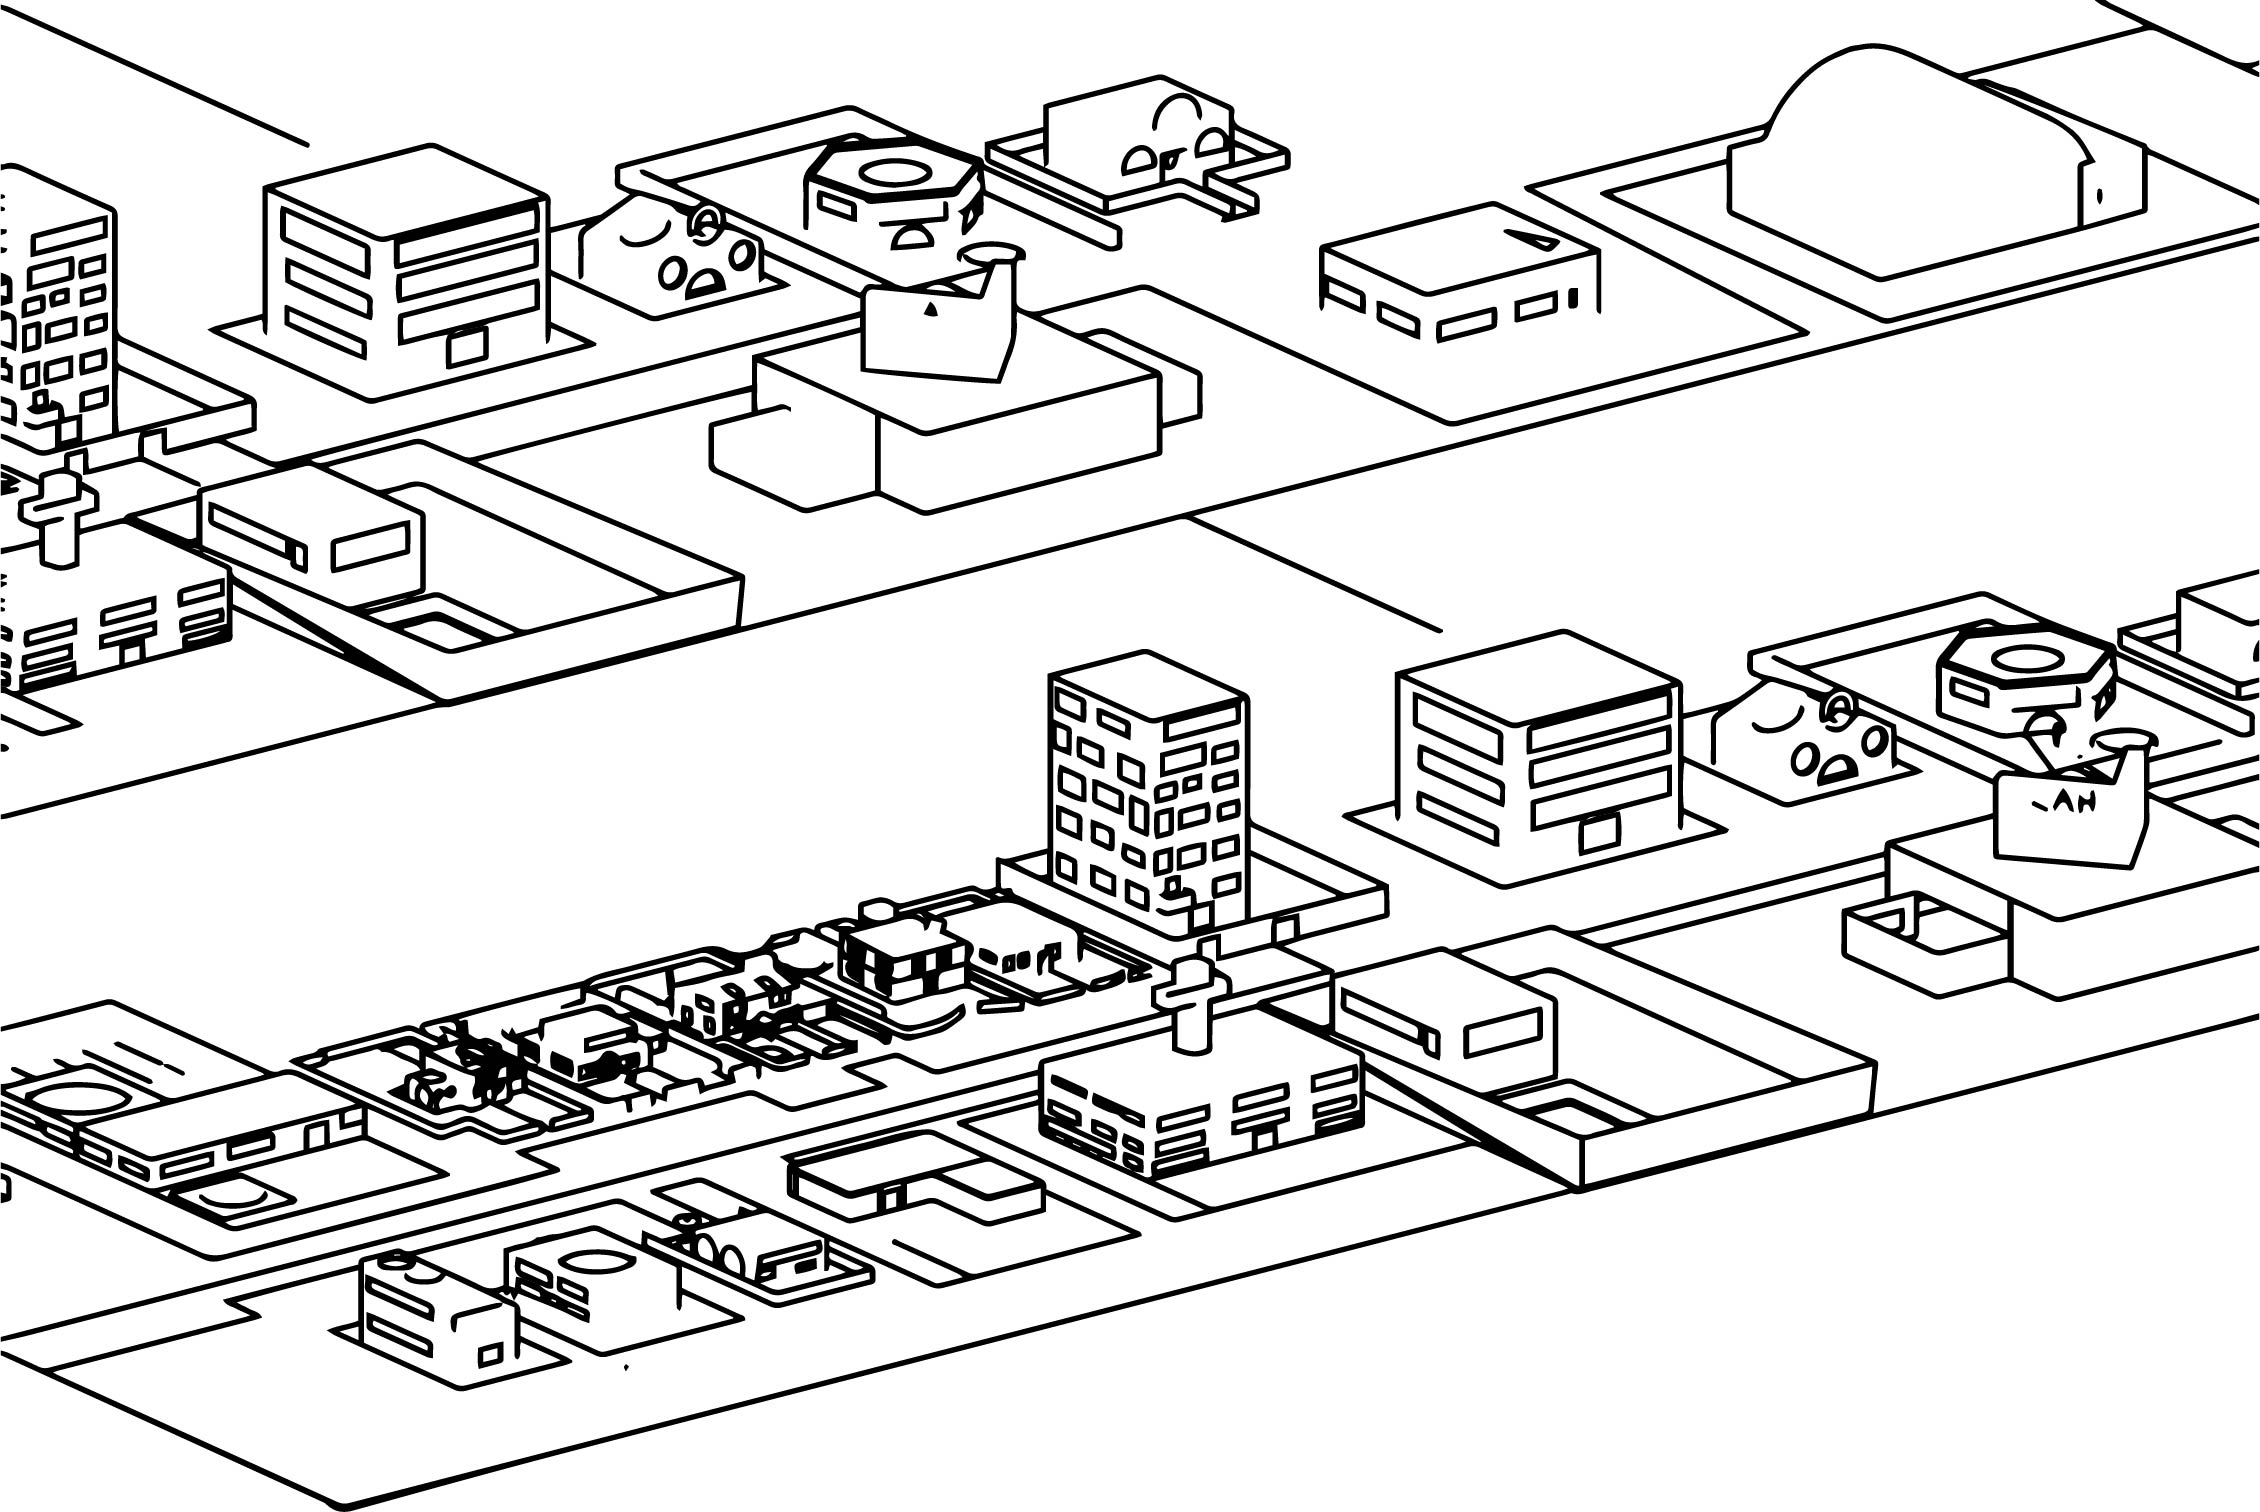 Mini City Outline Coloring Page